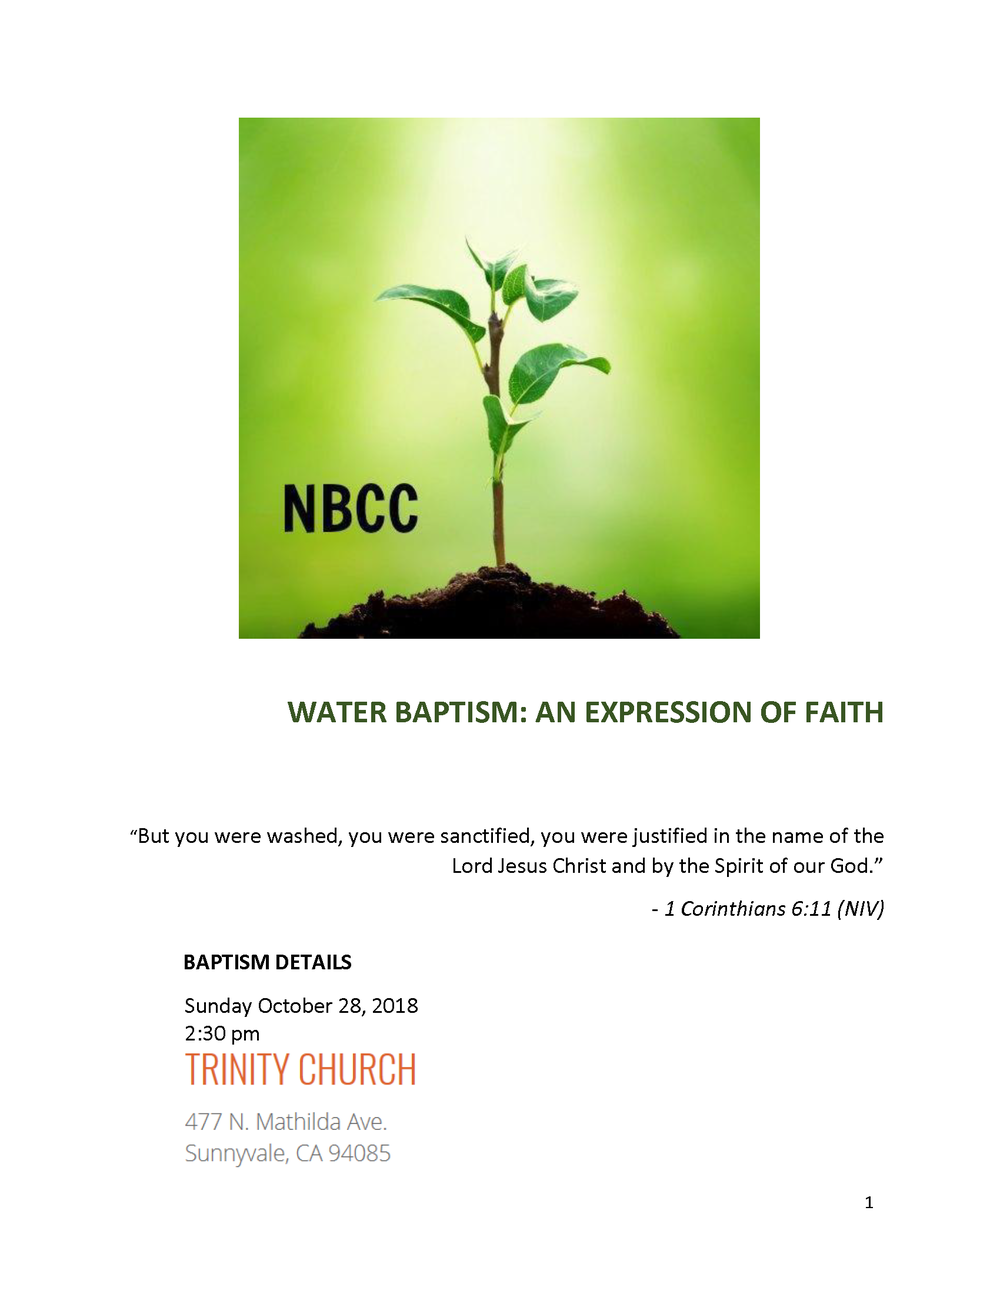 Baptism - Your Expression of Faith 10-28-18_Page_01.png